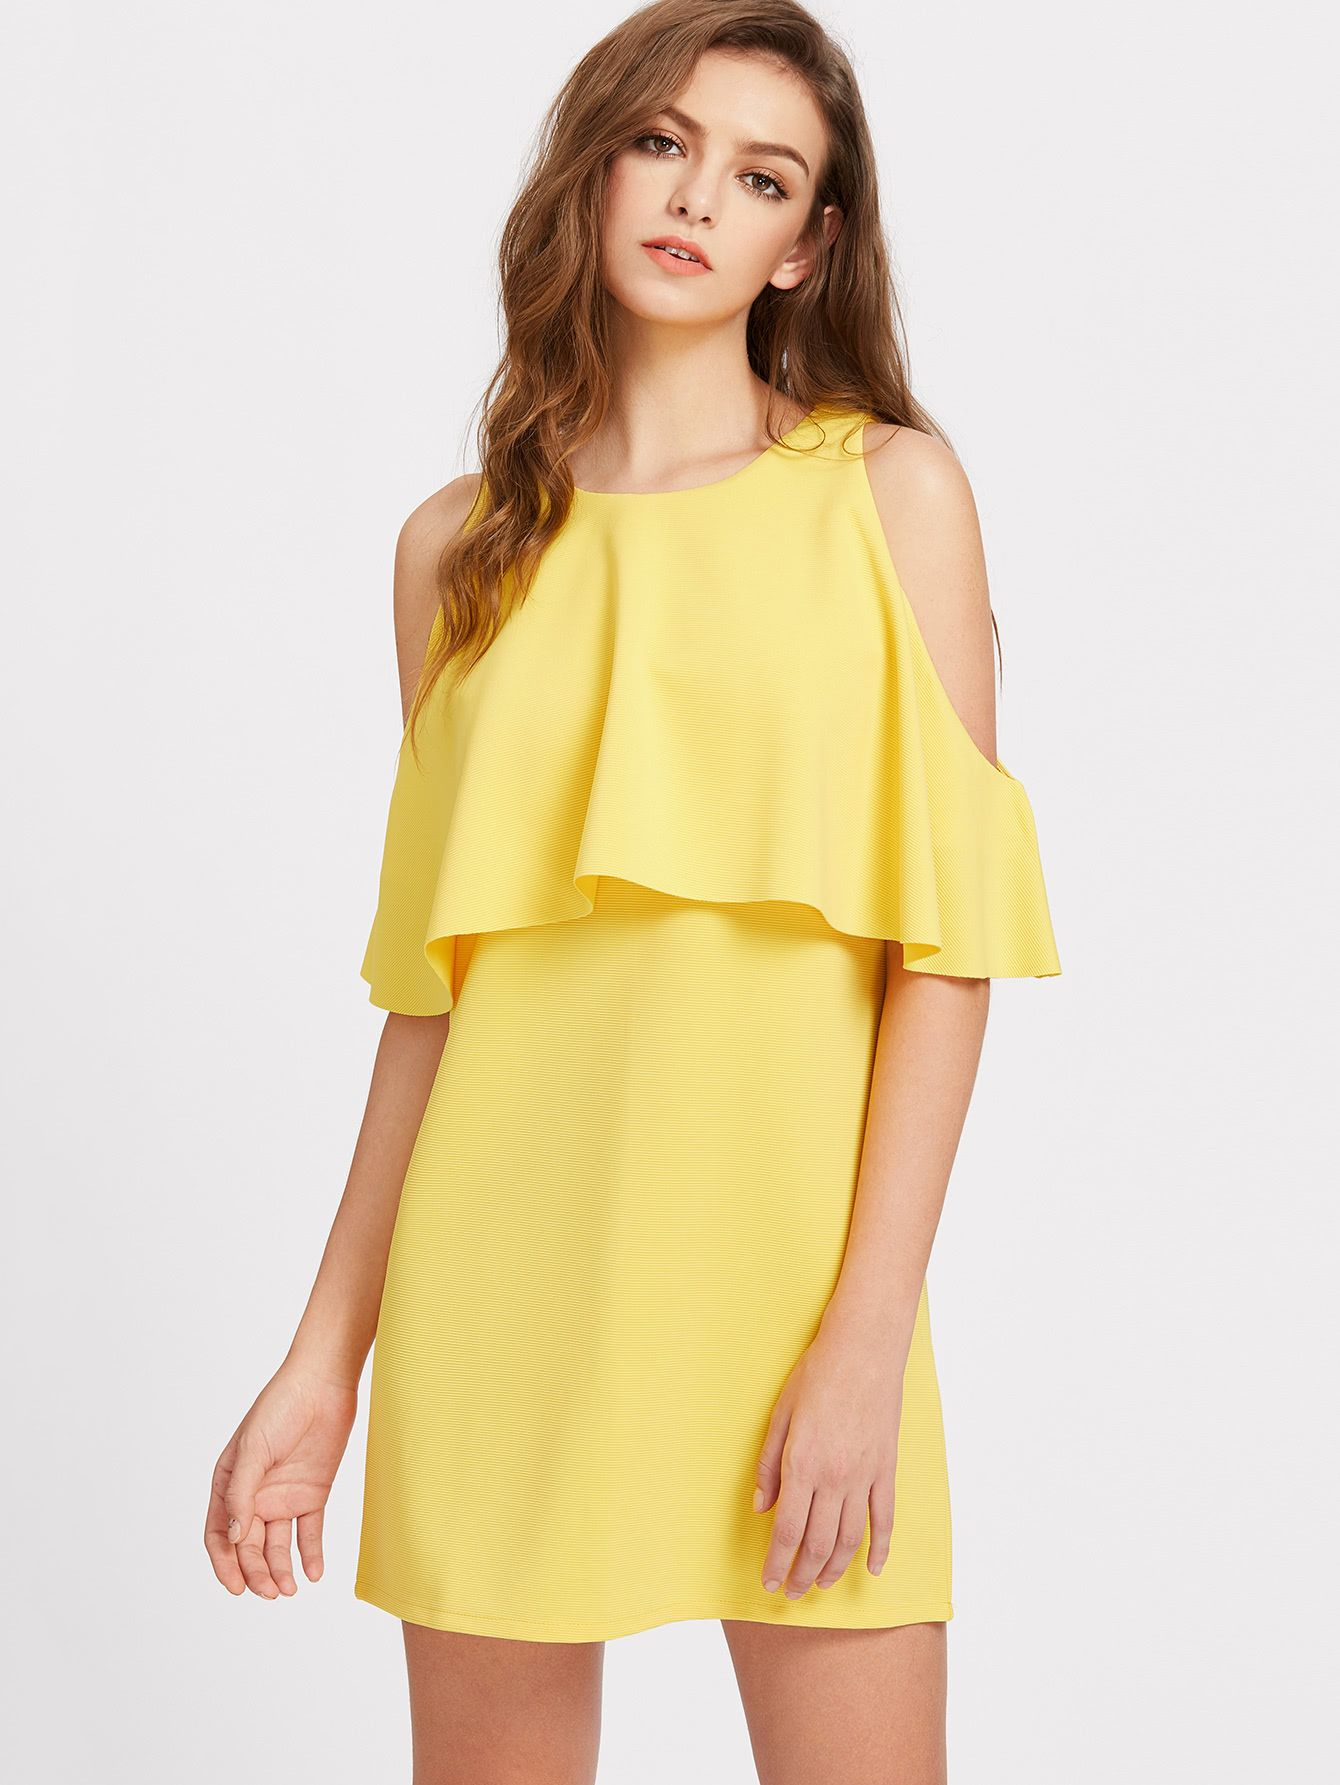 4a03506dd4 Shop Open Shoulder Ruffle Trim Tunic Dress online. SheIn offers Open  Shoulder Ruffle Trim Tunic Dress & more to fit your fashionable needs.